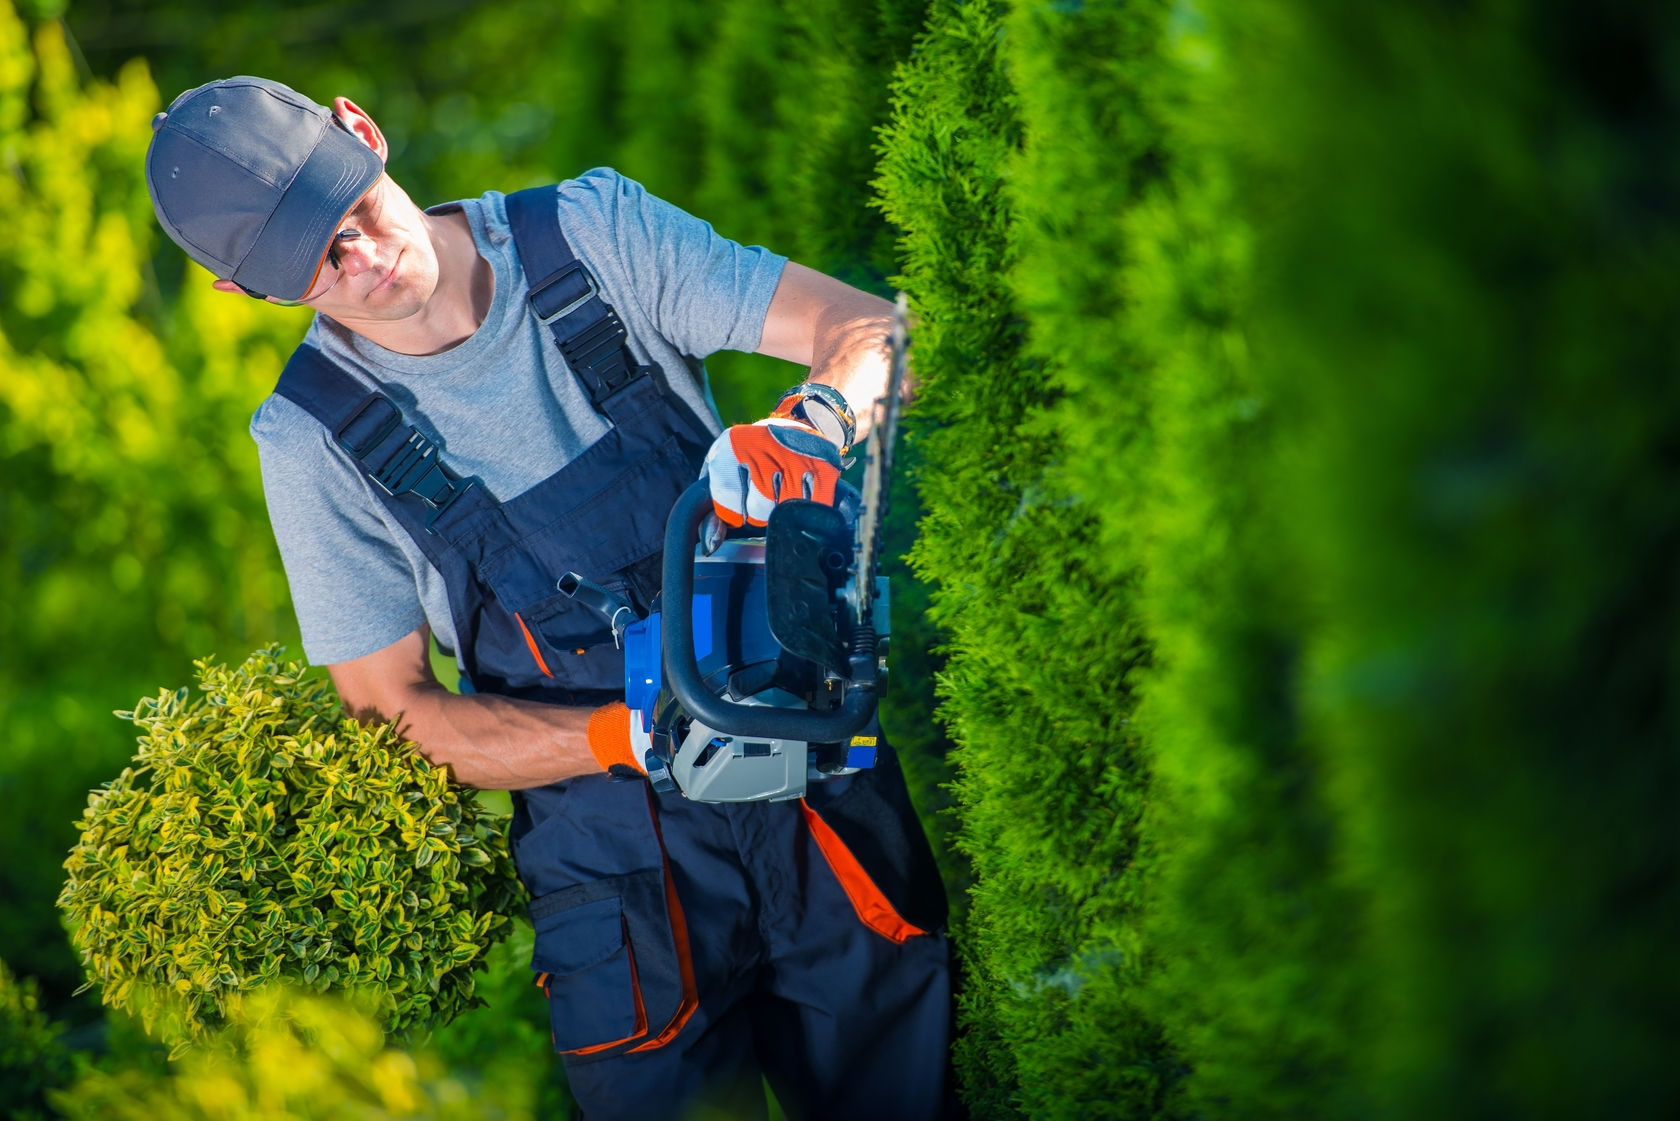 Landscaping Professionals